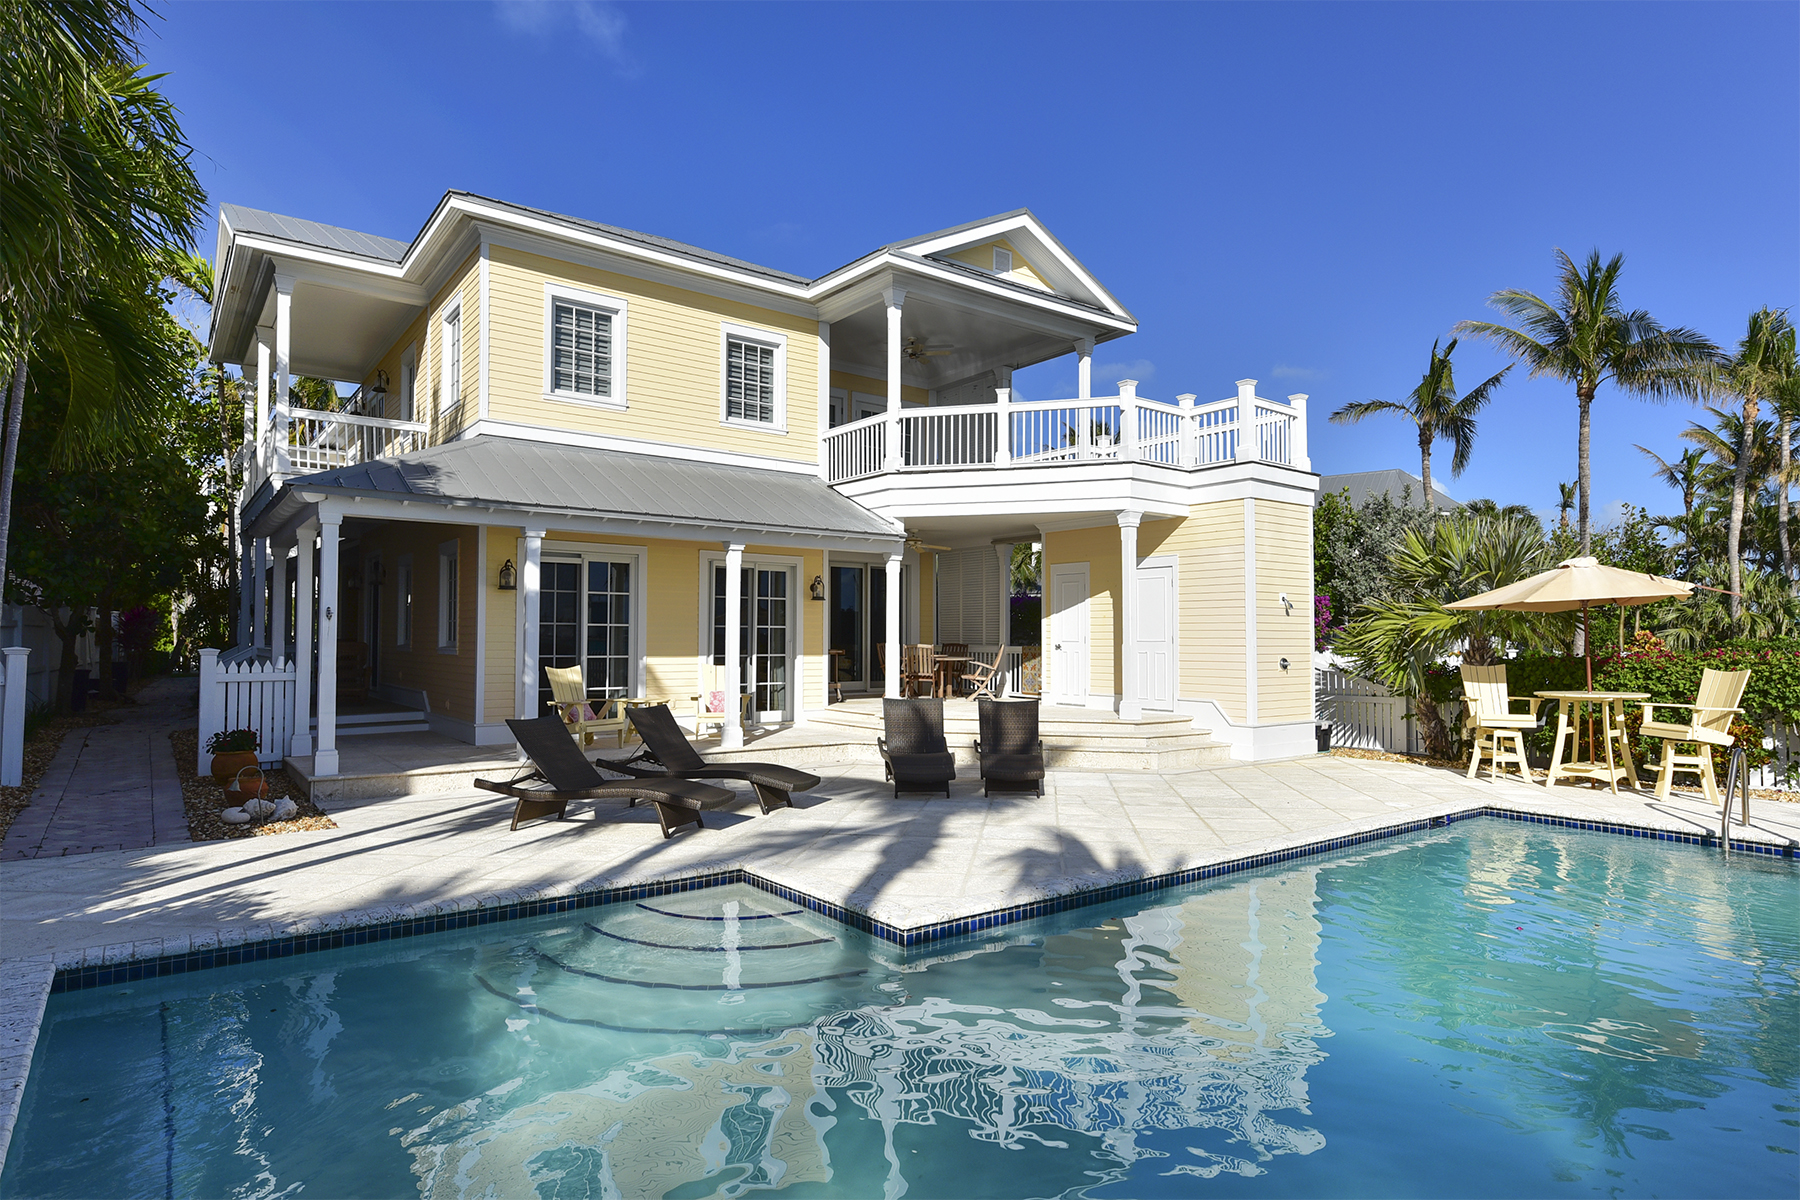 Single Family Home for Sale at Oceanfront Home on Sunset Key 23 Sunset Key Drive Key West, Florida 33040 United States